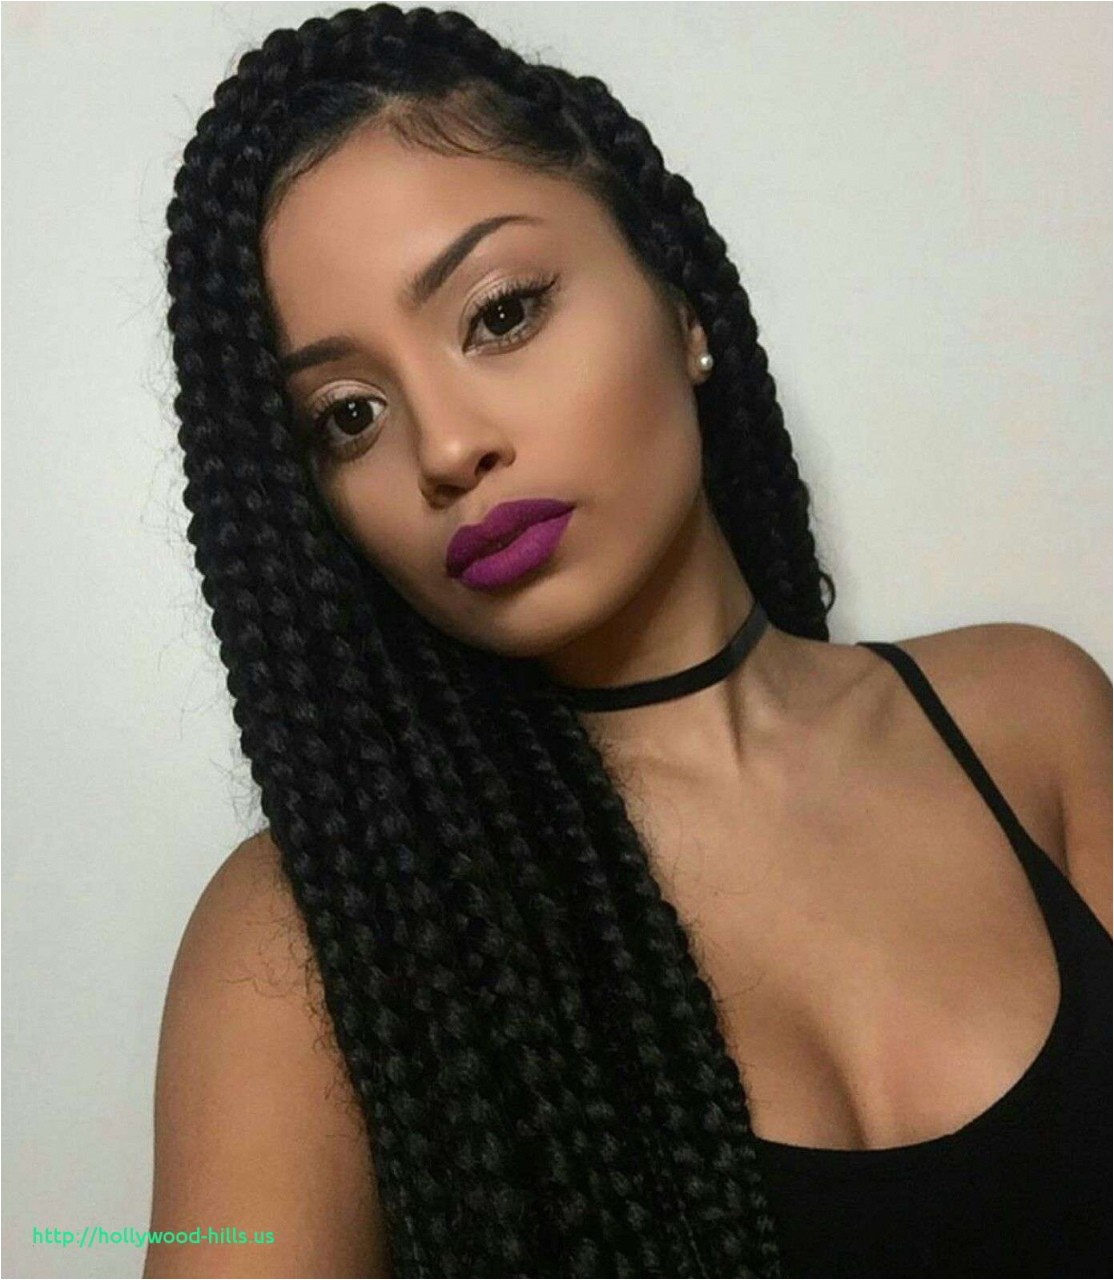 Cute Hairstyles for Girls 55 Hairstyles for Black Women with Natural Hair New Hairstyle App